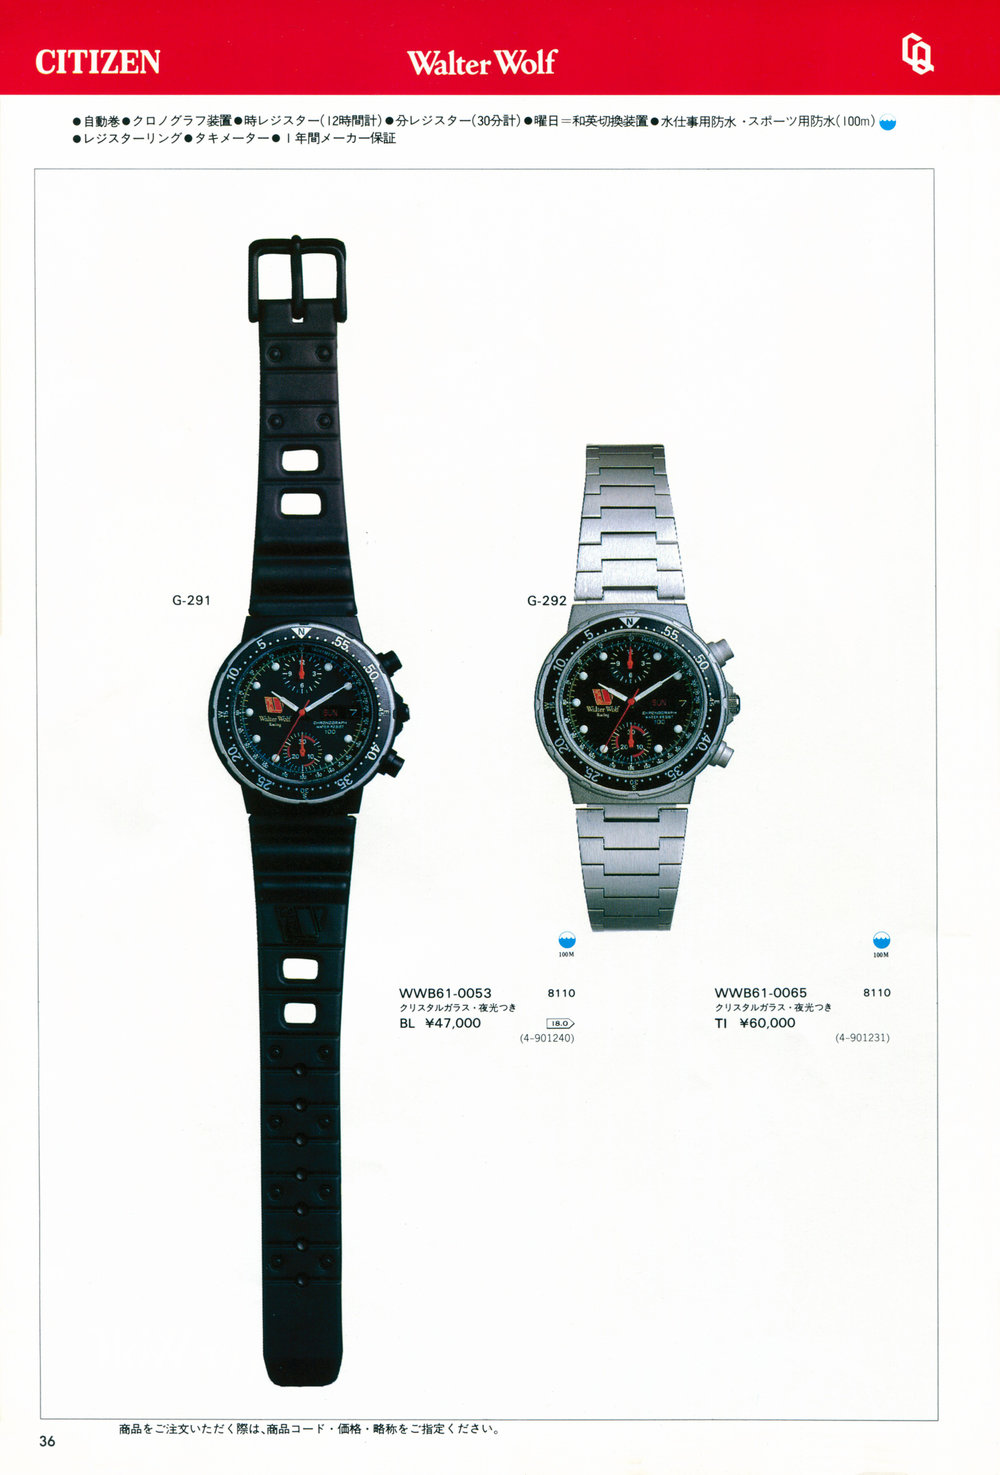 Citizen 1983-6 JDM Catalog